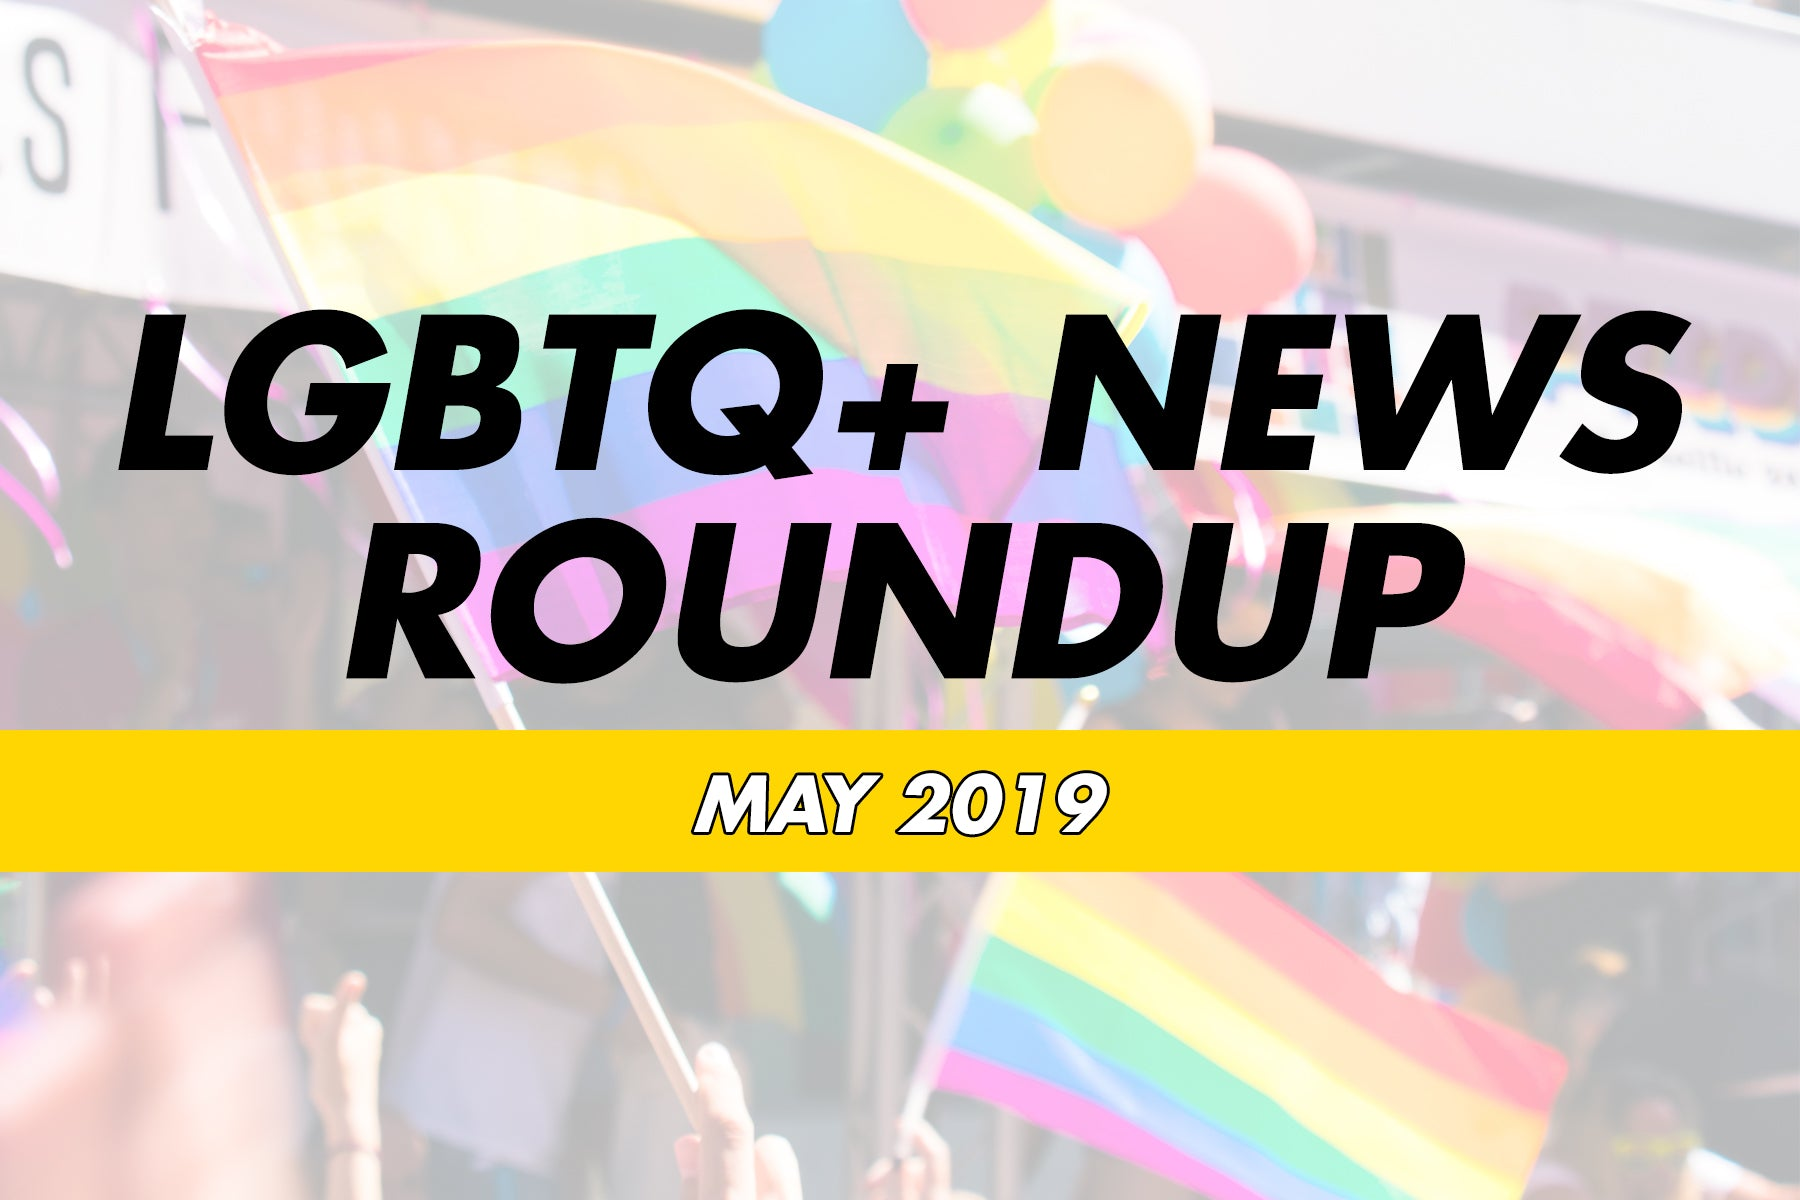 LGBTQ+ News Roundup May 2019